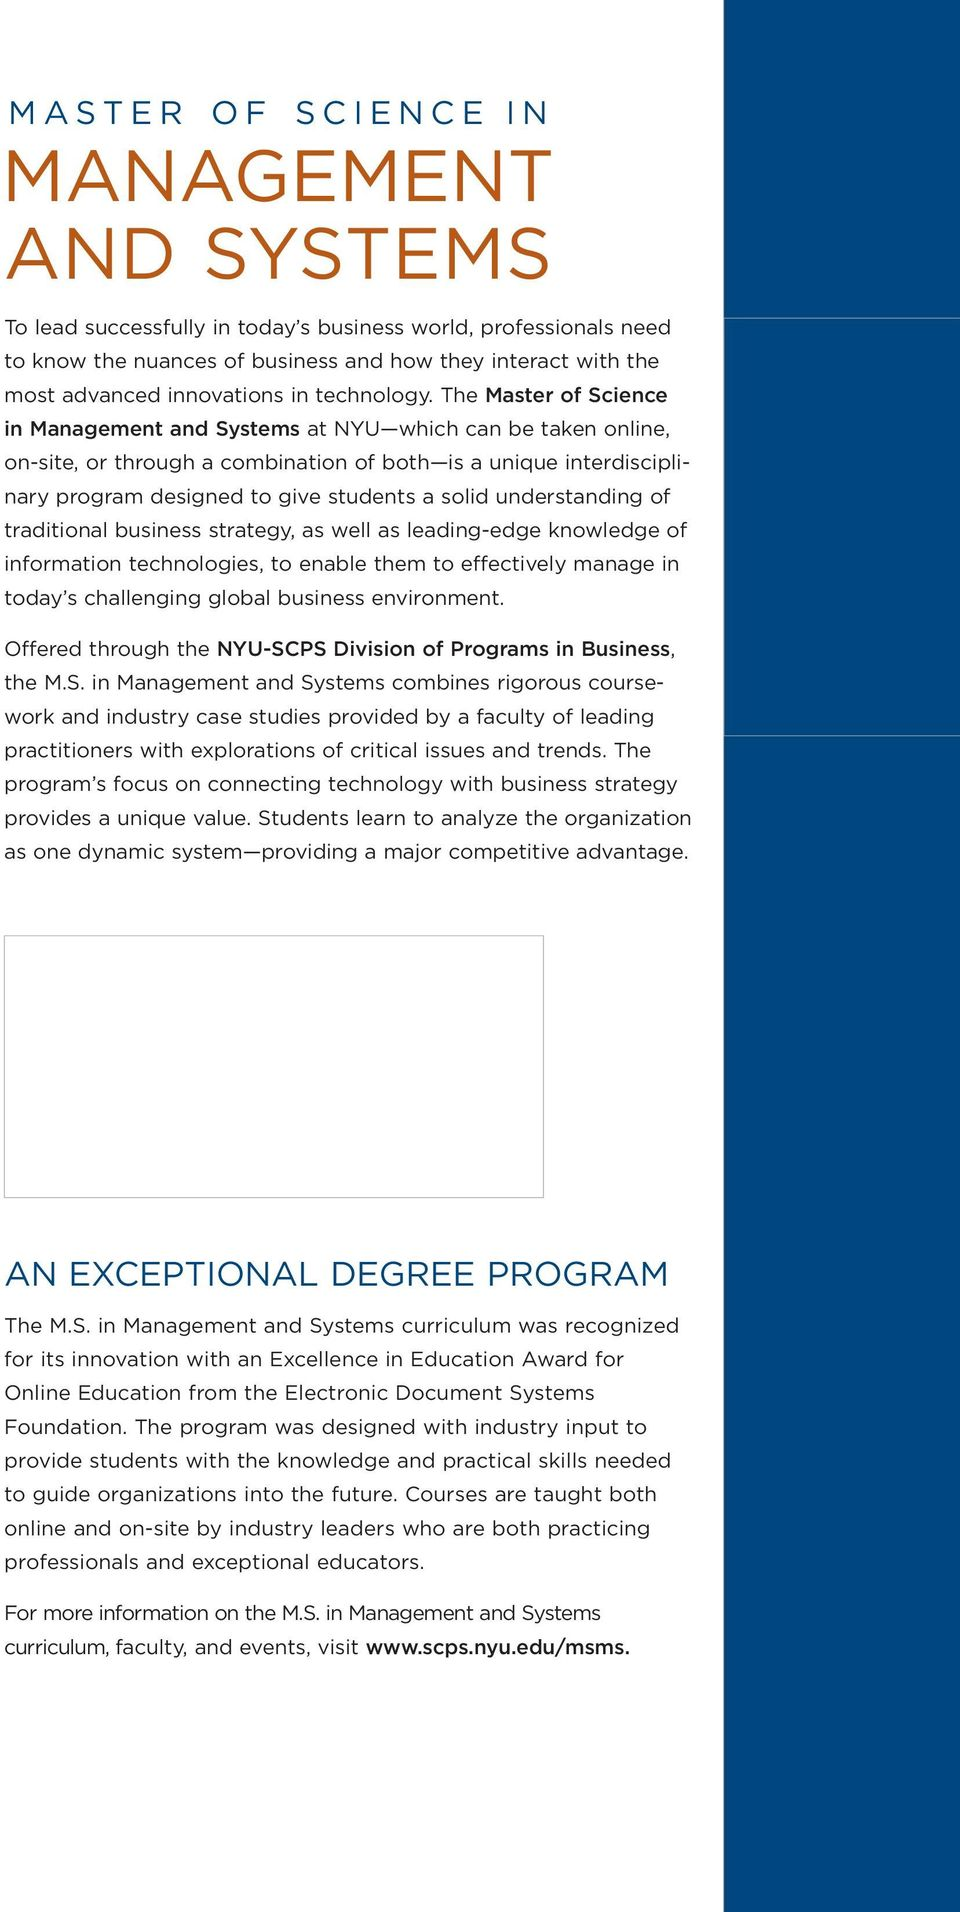 The Master of Science in Management and Systems at NYU which can be taken online, on-site, or through a combination of both is a unique interdisciplinary program designed to give students a solid